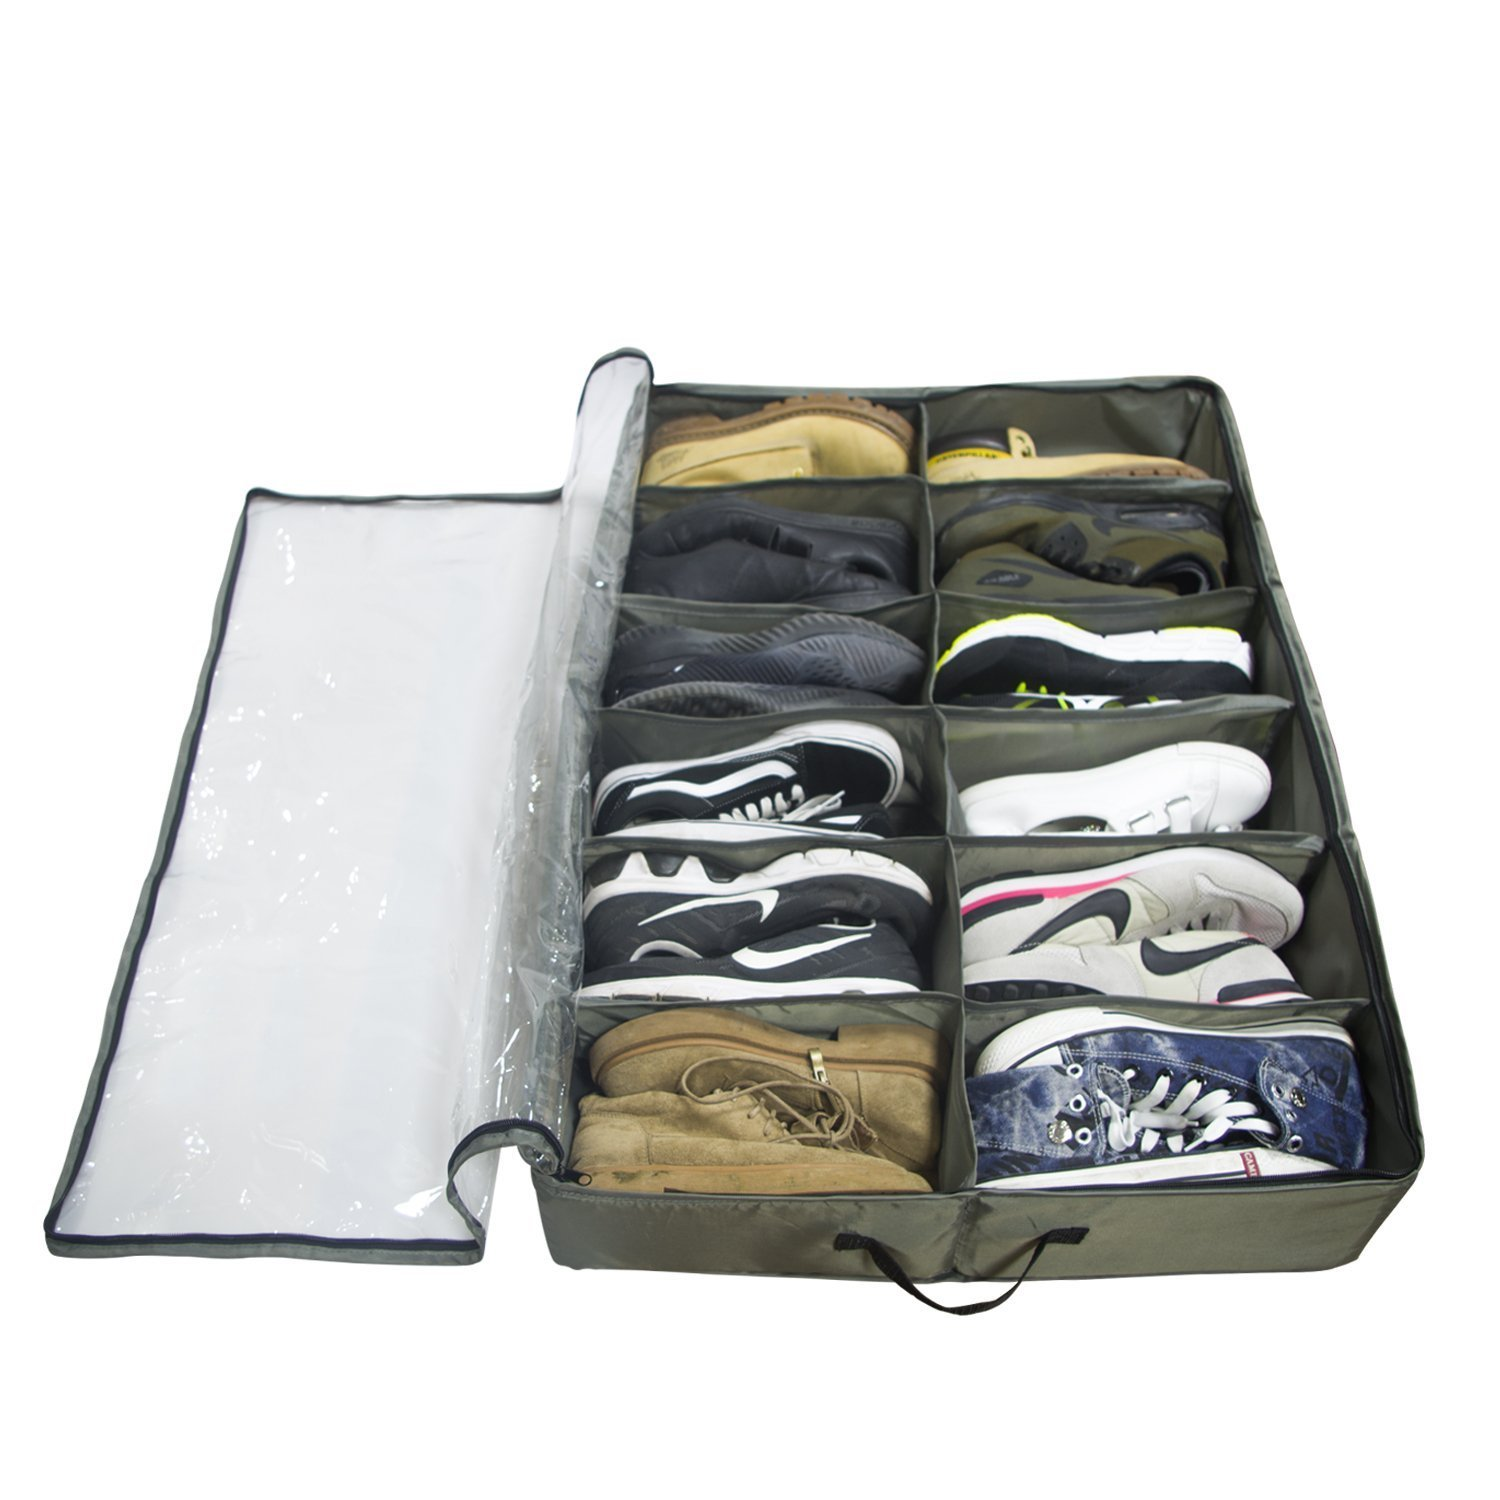 Sturdy Underbed Shoe Storage.Details About Acmetop Built In Structure Under Bed Shoe Storage Space Saver Organizer Sturdy